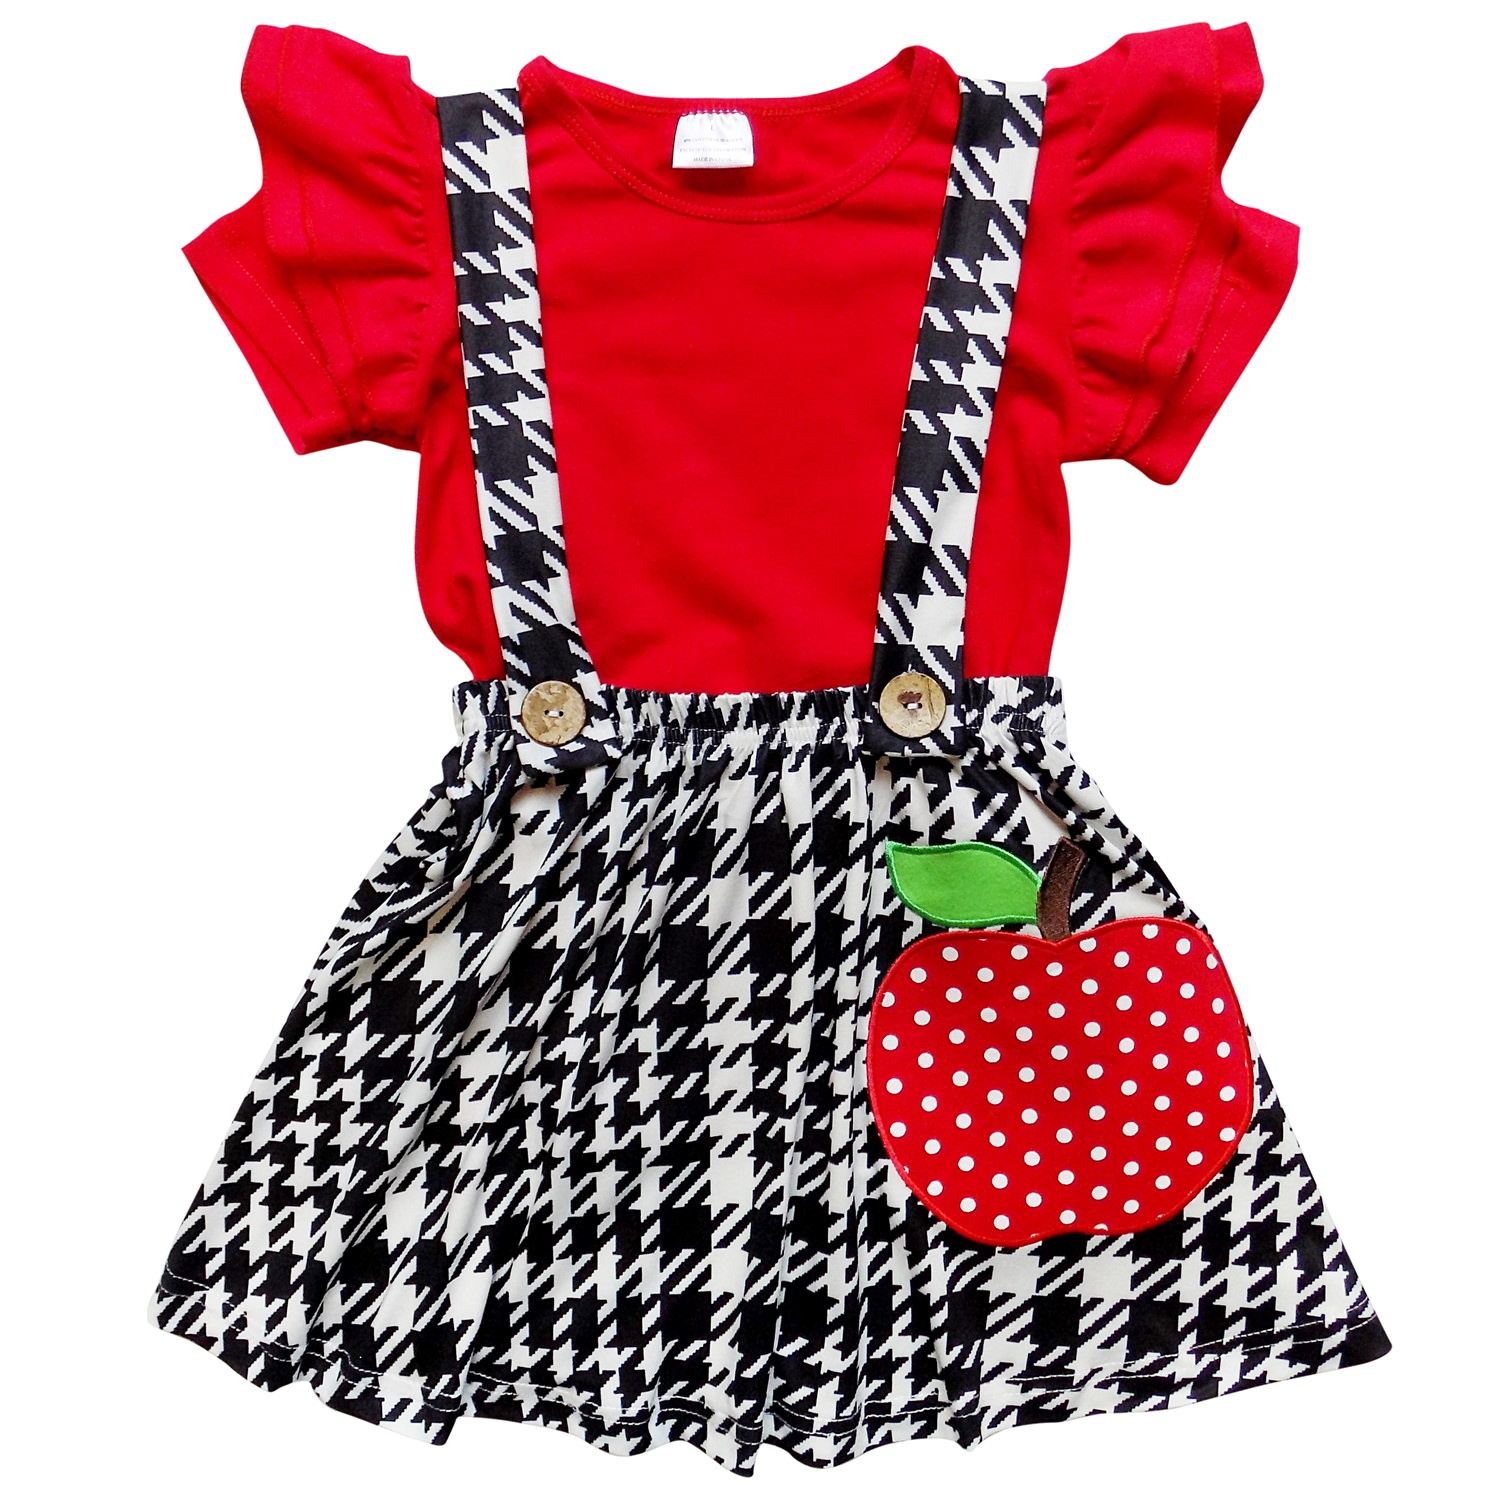 So Sydney Toddler \u0026 Girls Apple Unicorn Back to School Collection Skirt  Set, Dress Or Outfit